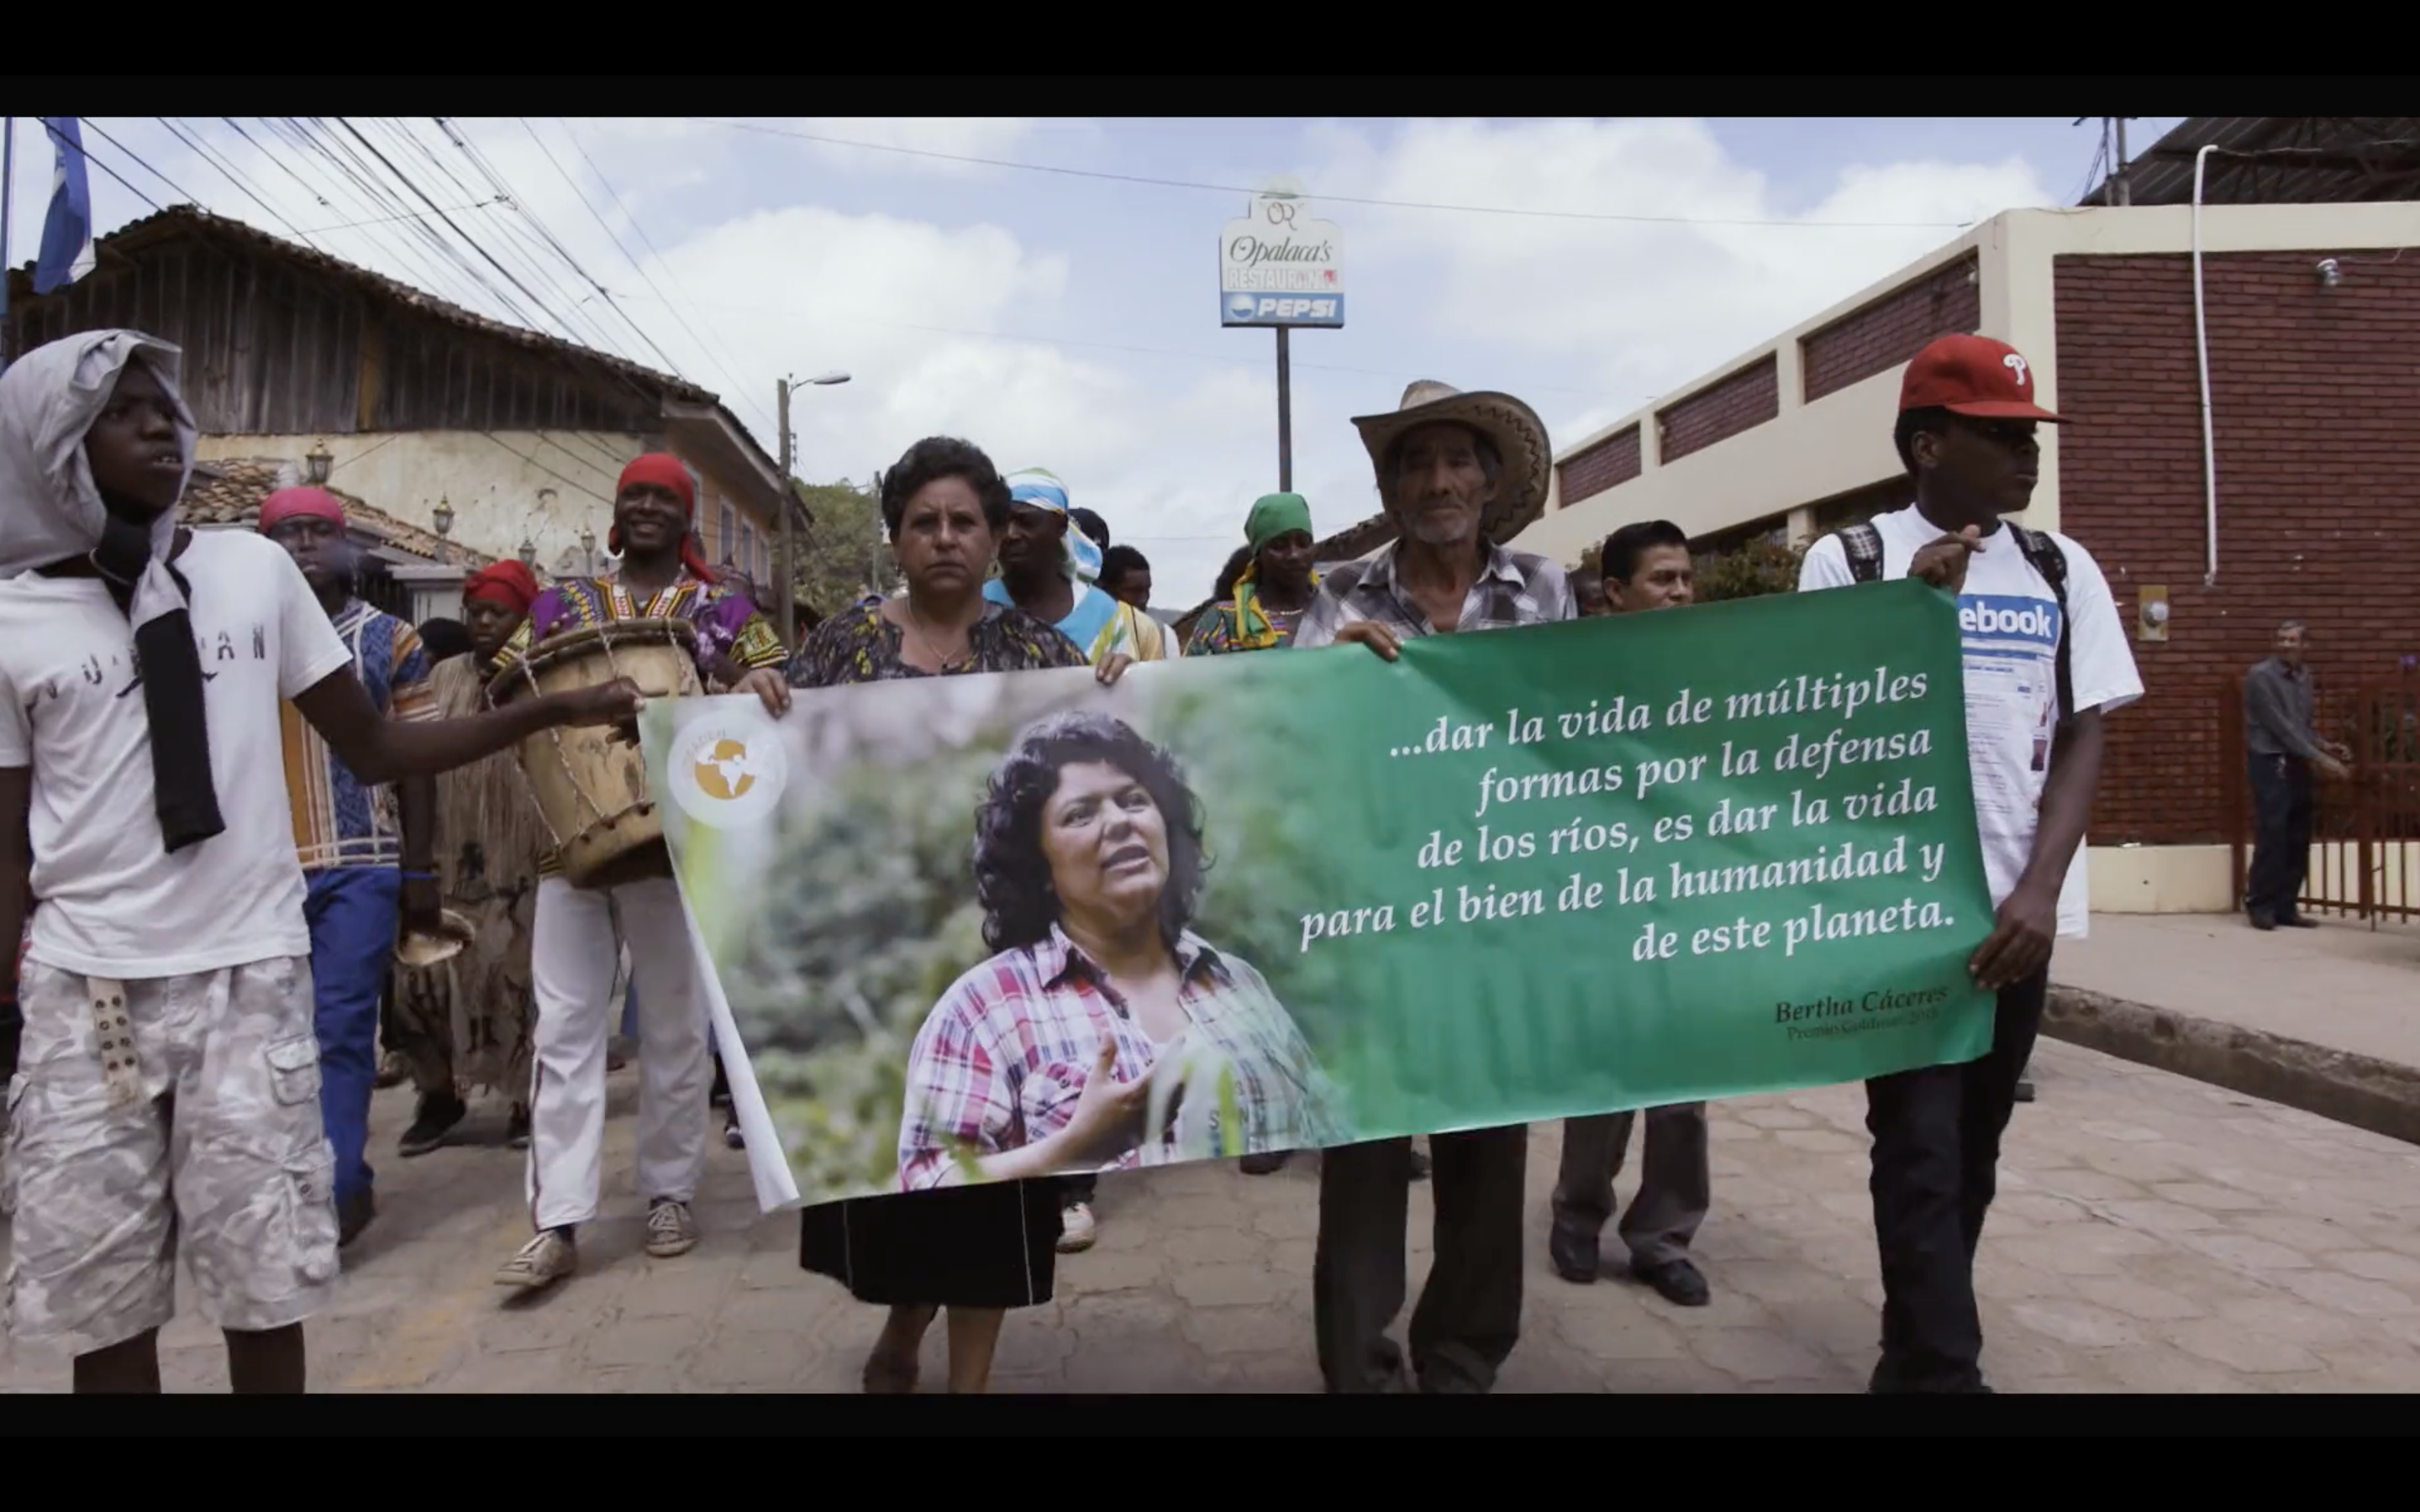 Justice_for_berta_march